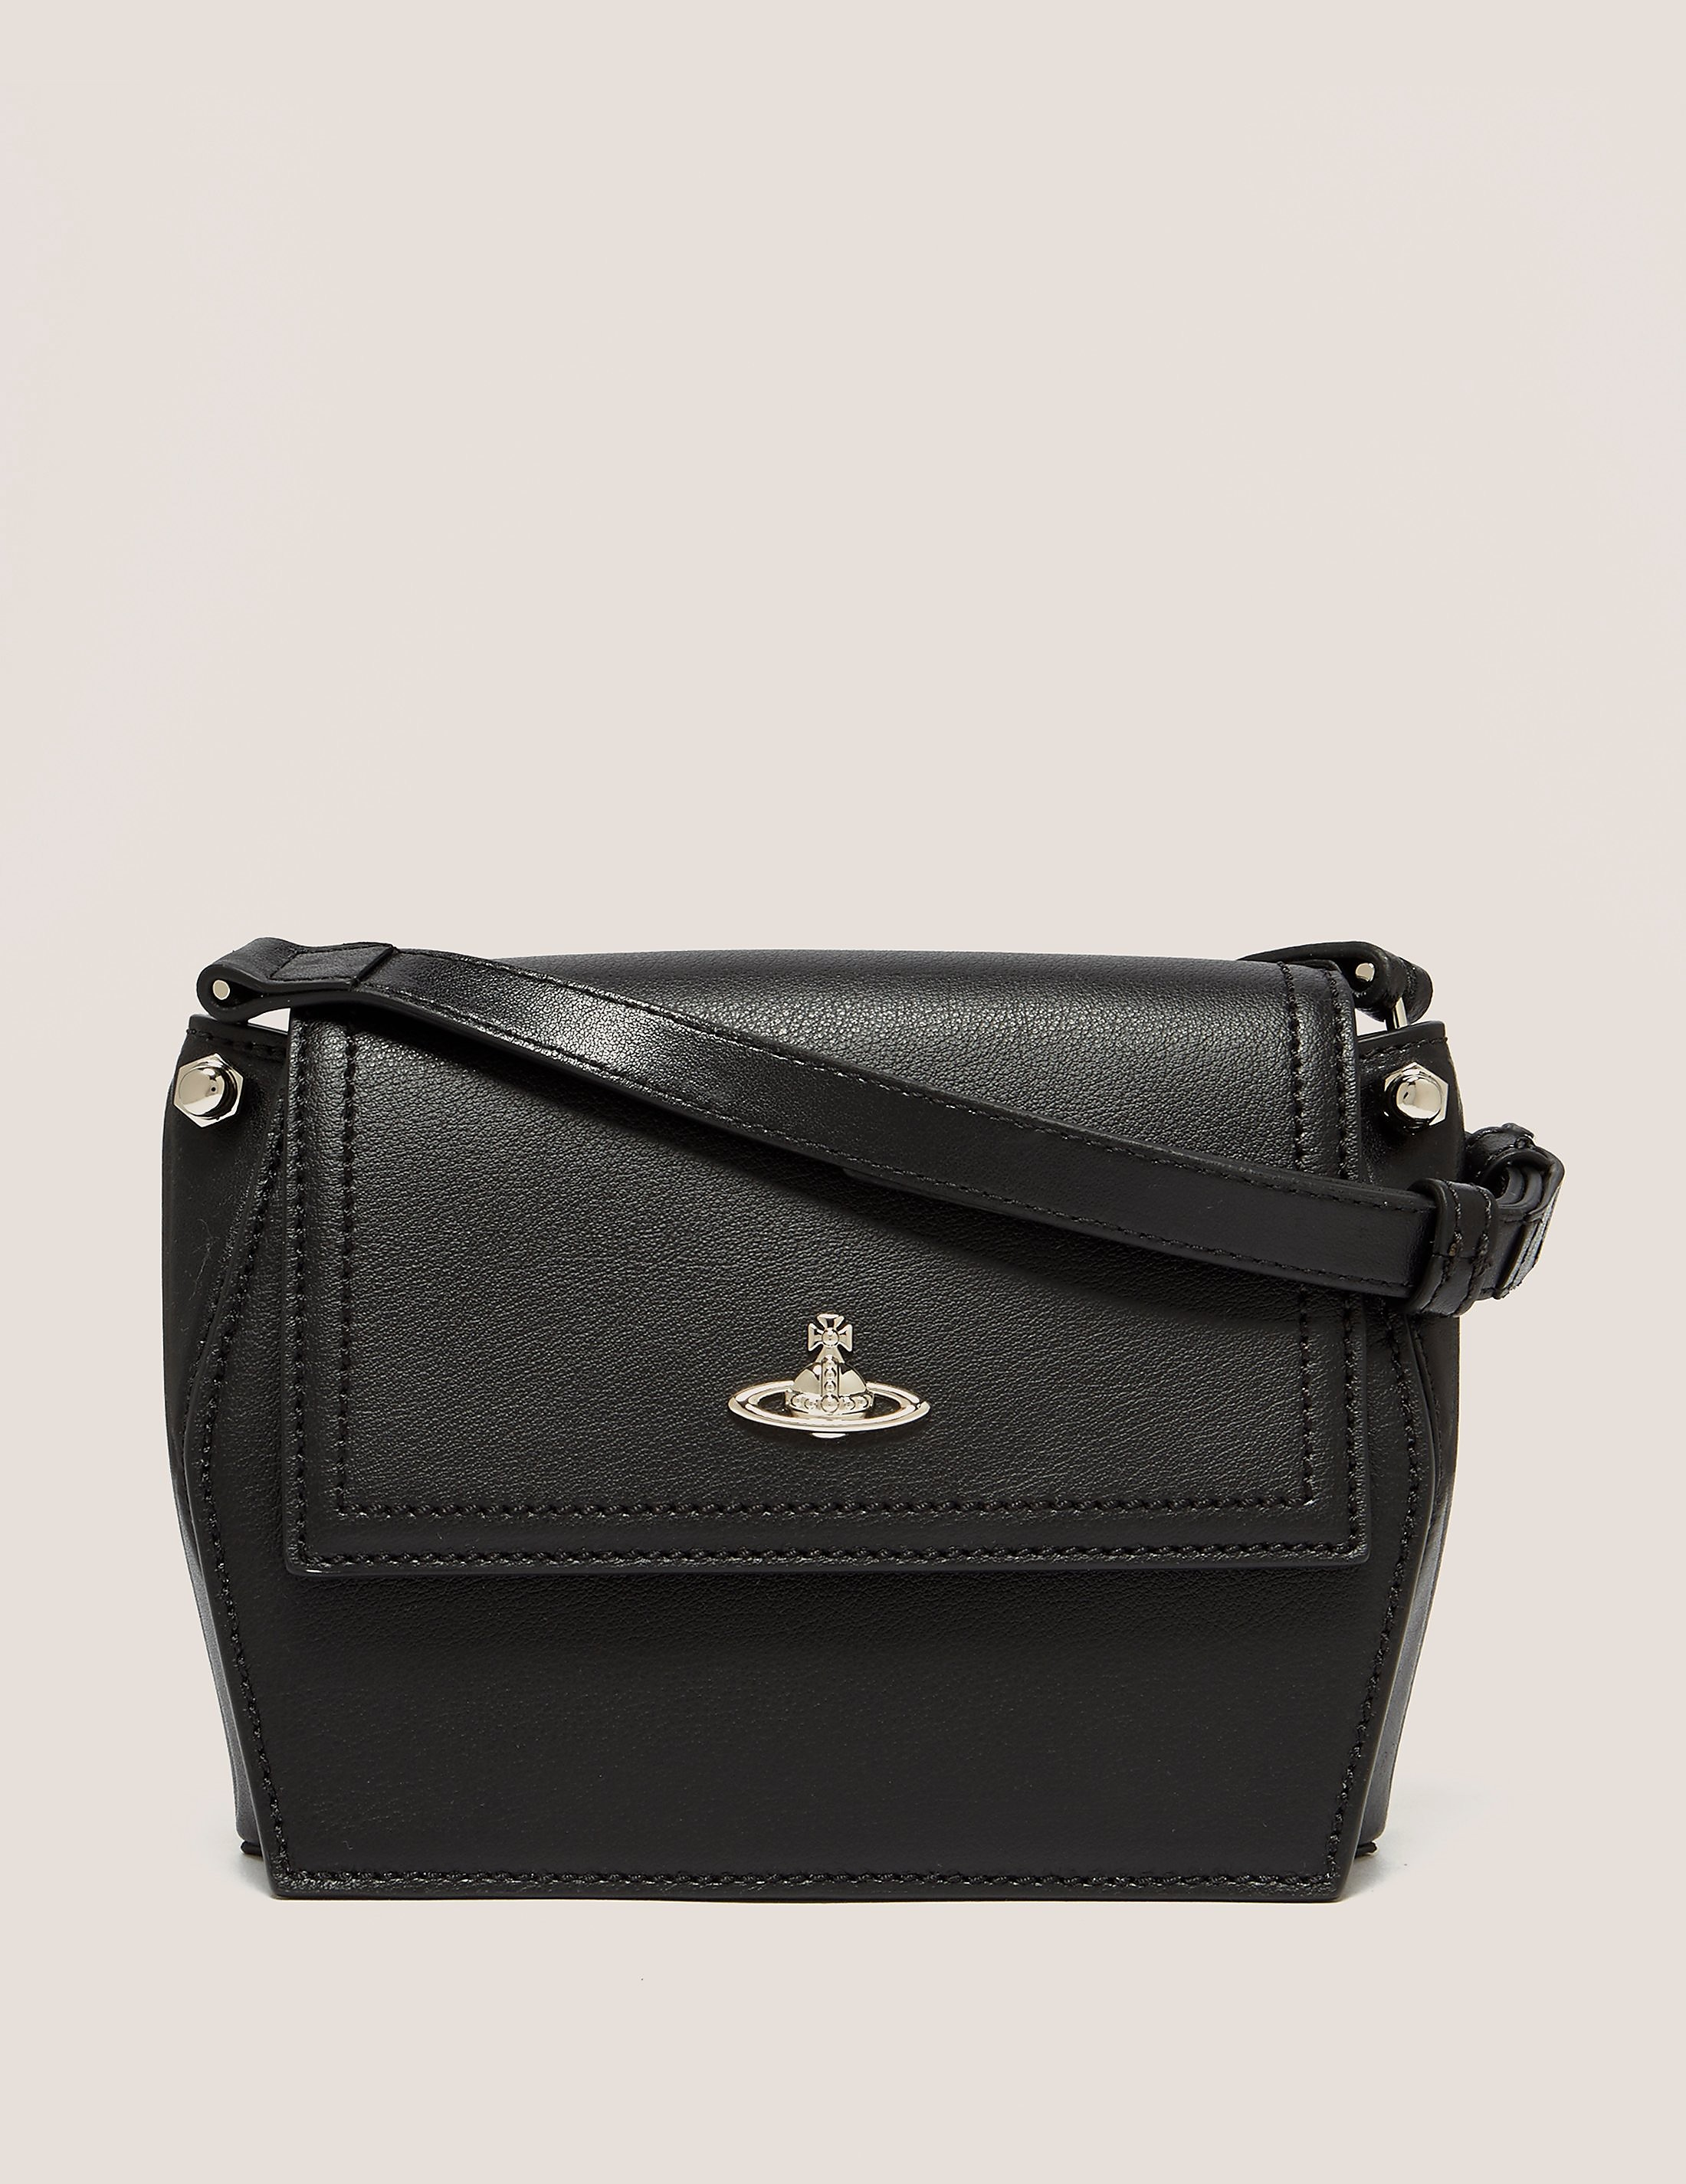 Vivienne Westwood Cambridge Crossbody Bag